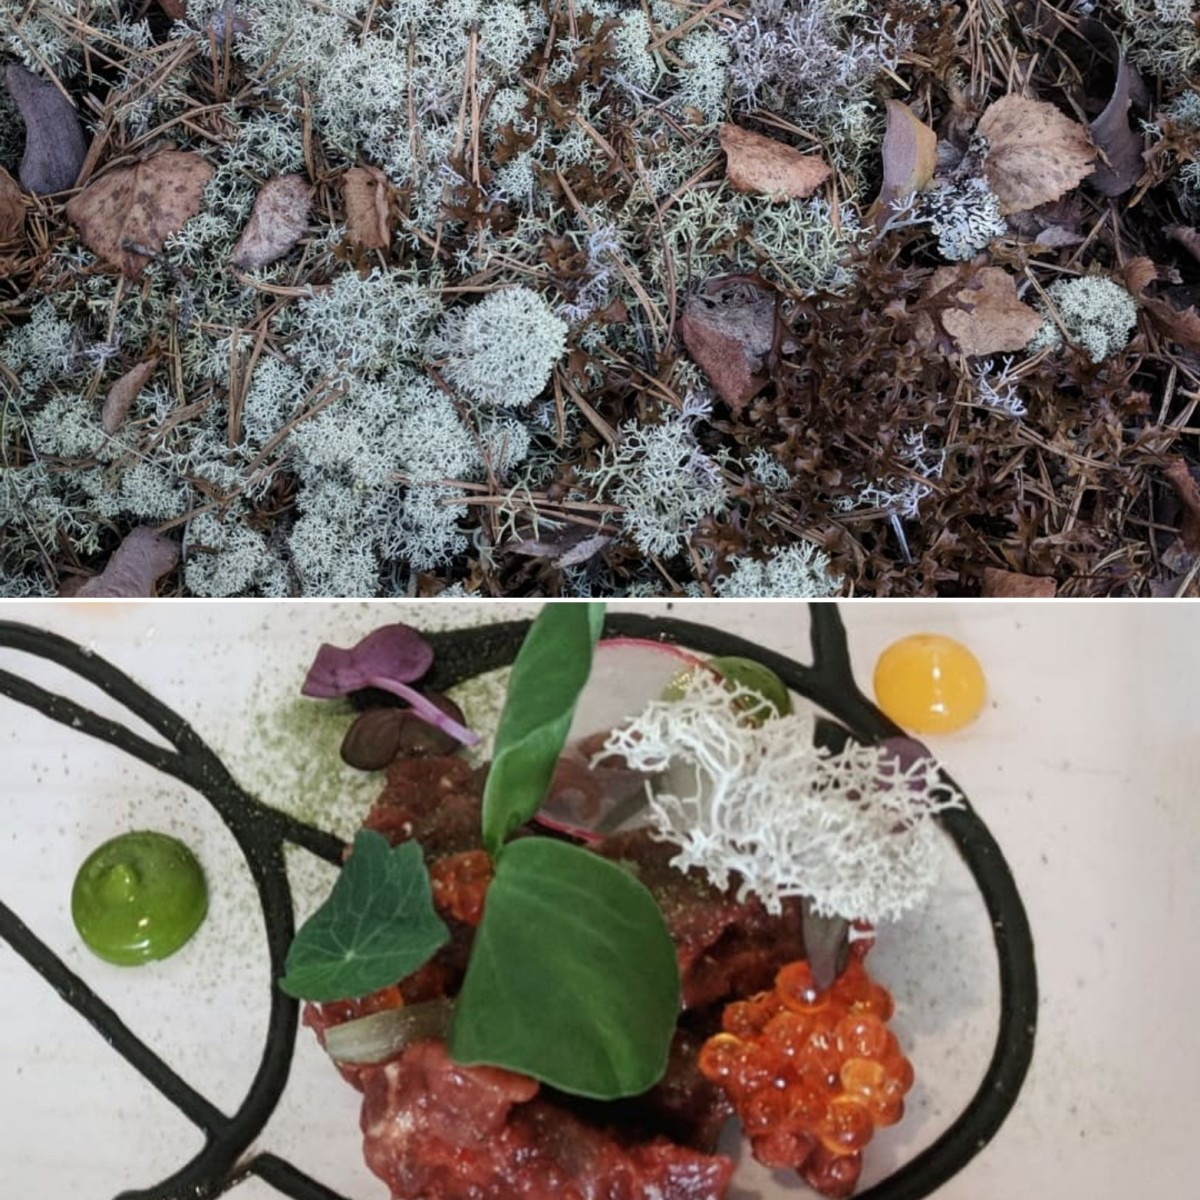 Lichens growing in the wild and a piece of reindeer lichen on top of elk tartare.